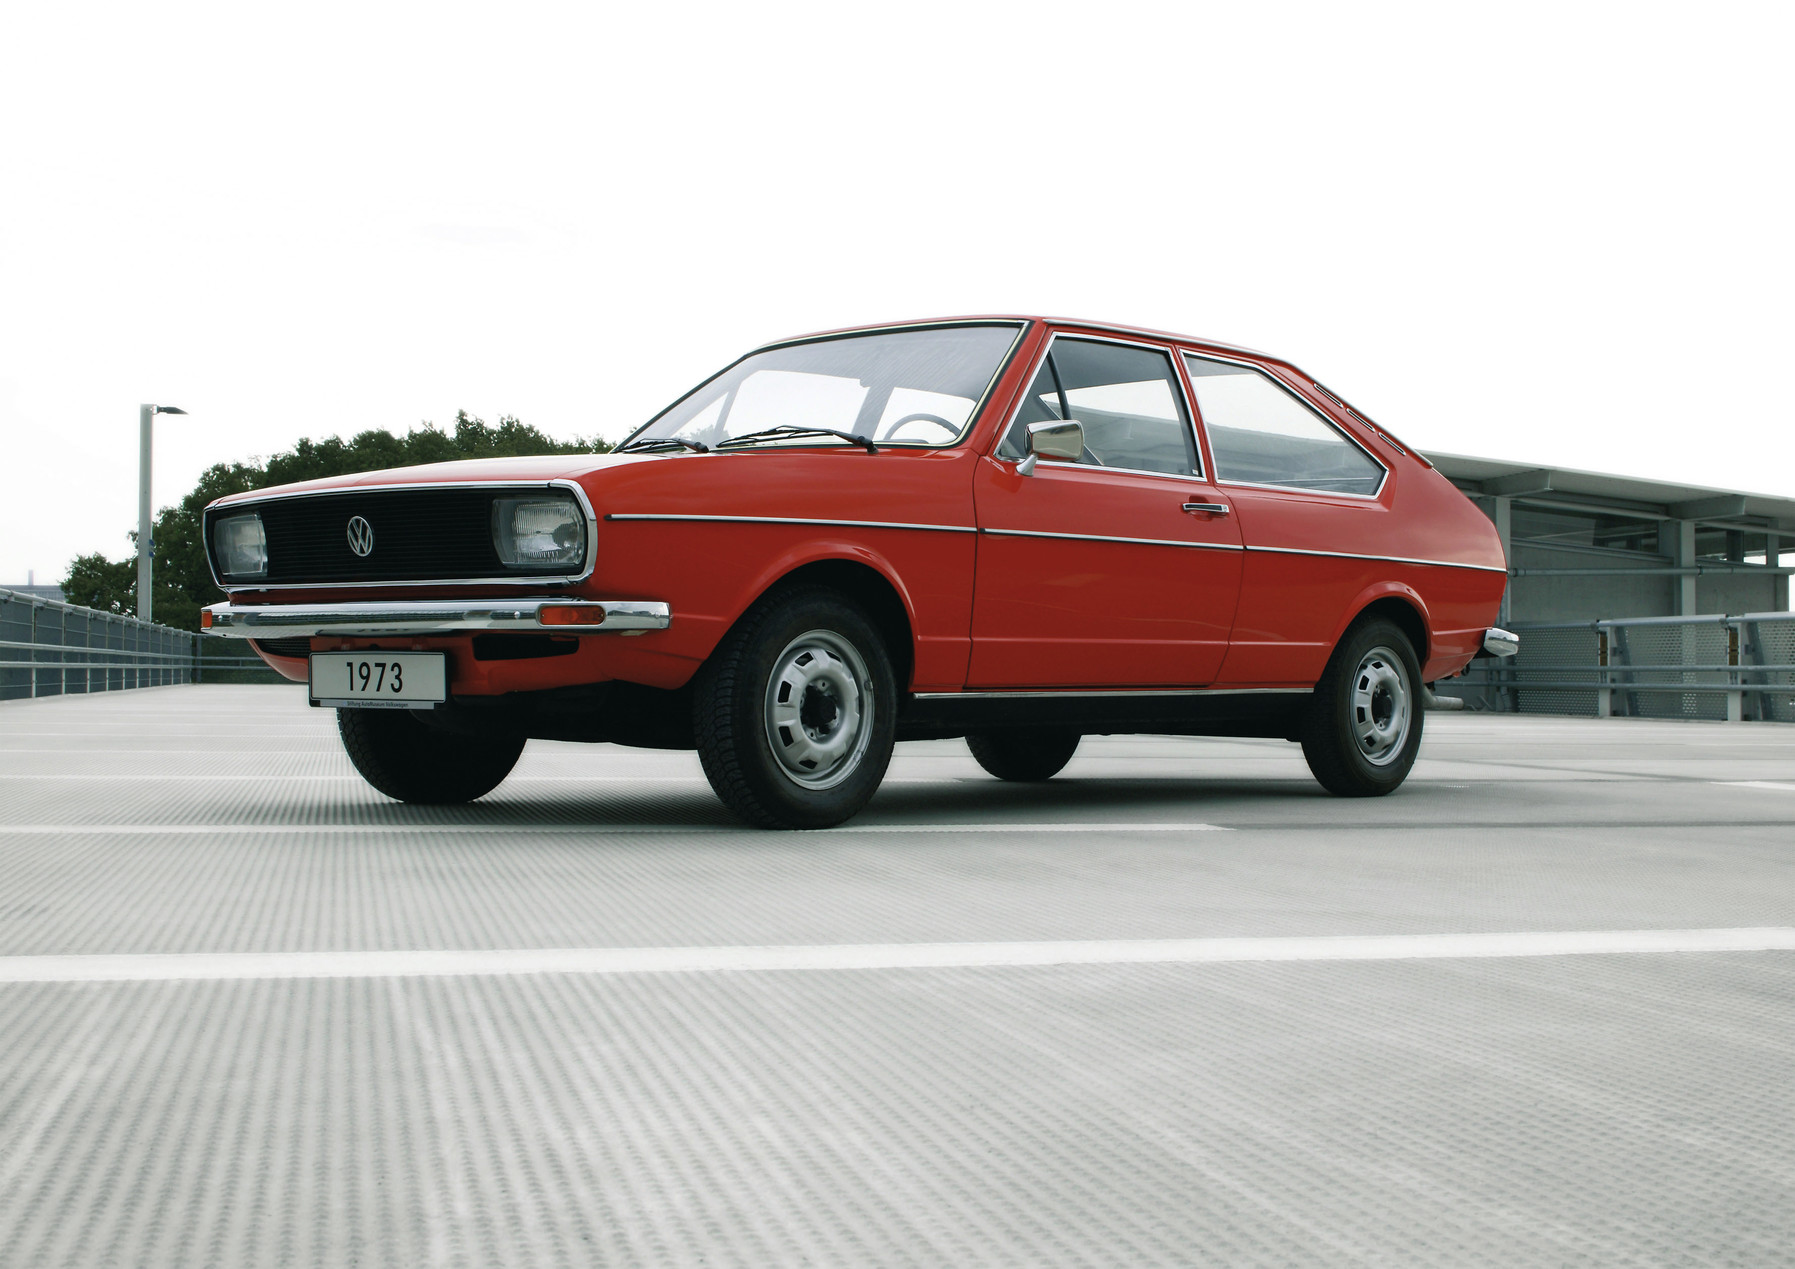 13 Million Passats: Volkswagen Passat B1, 1973